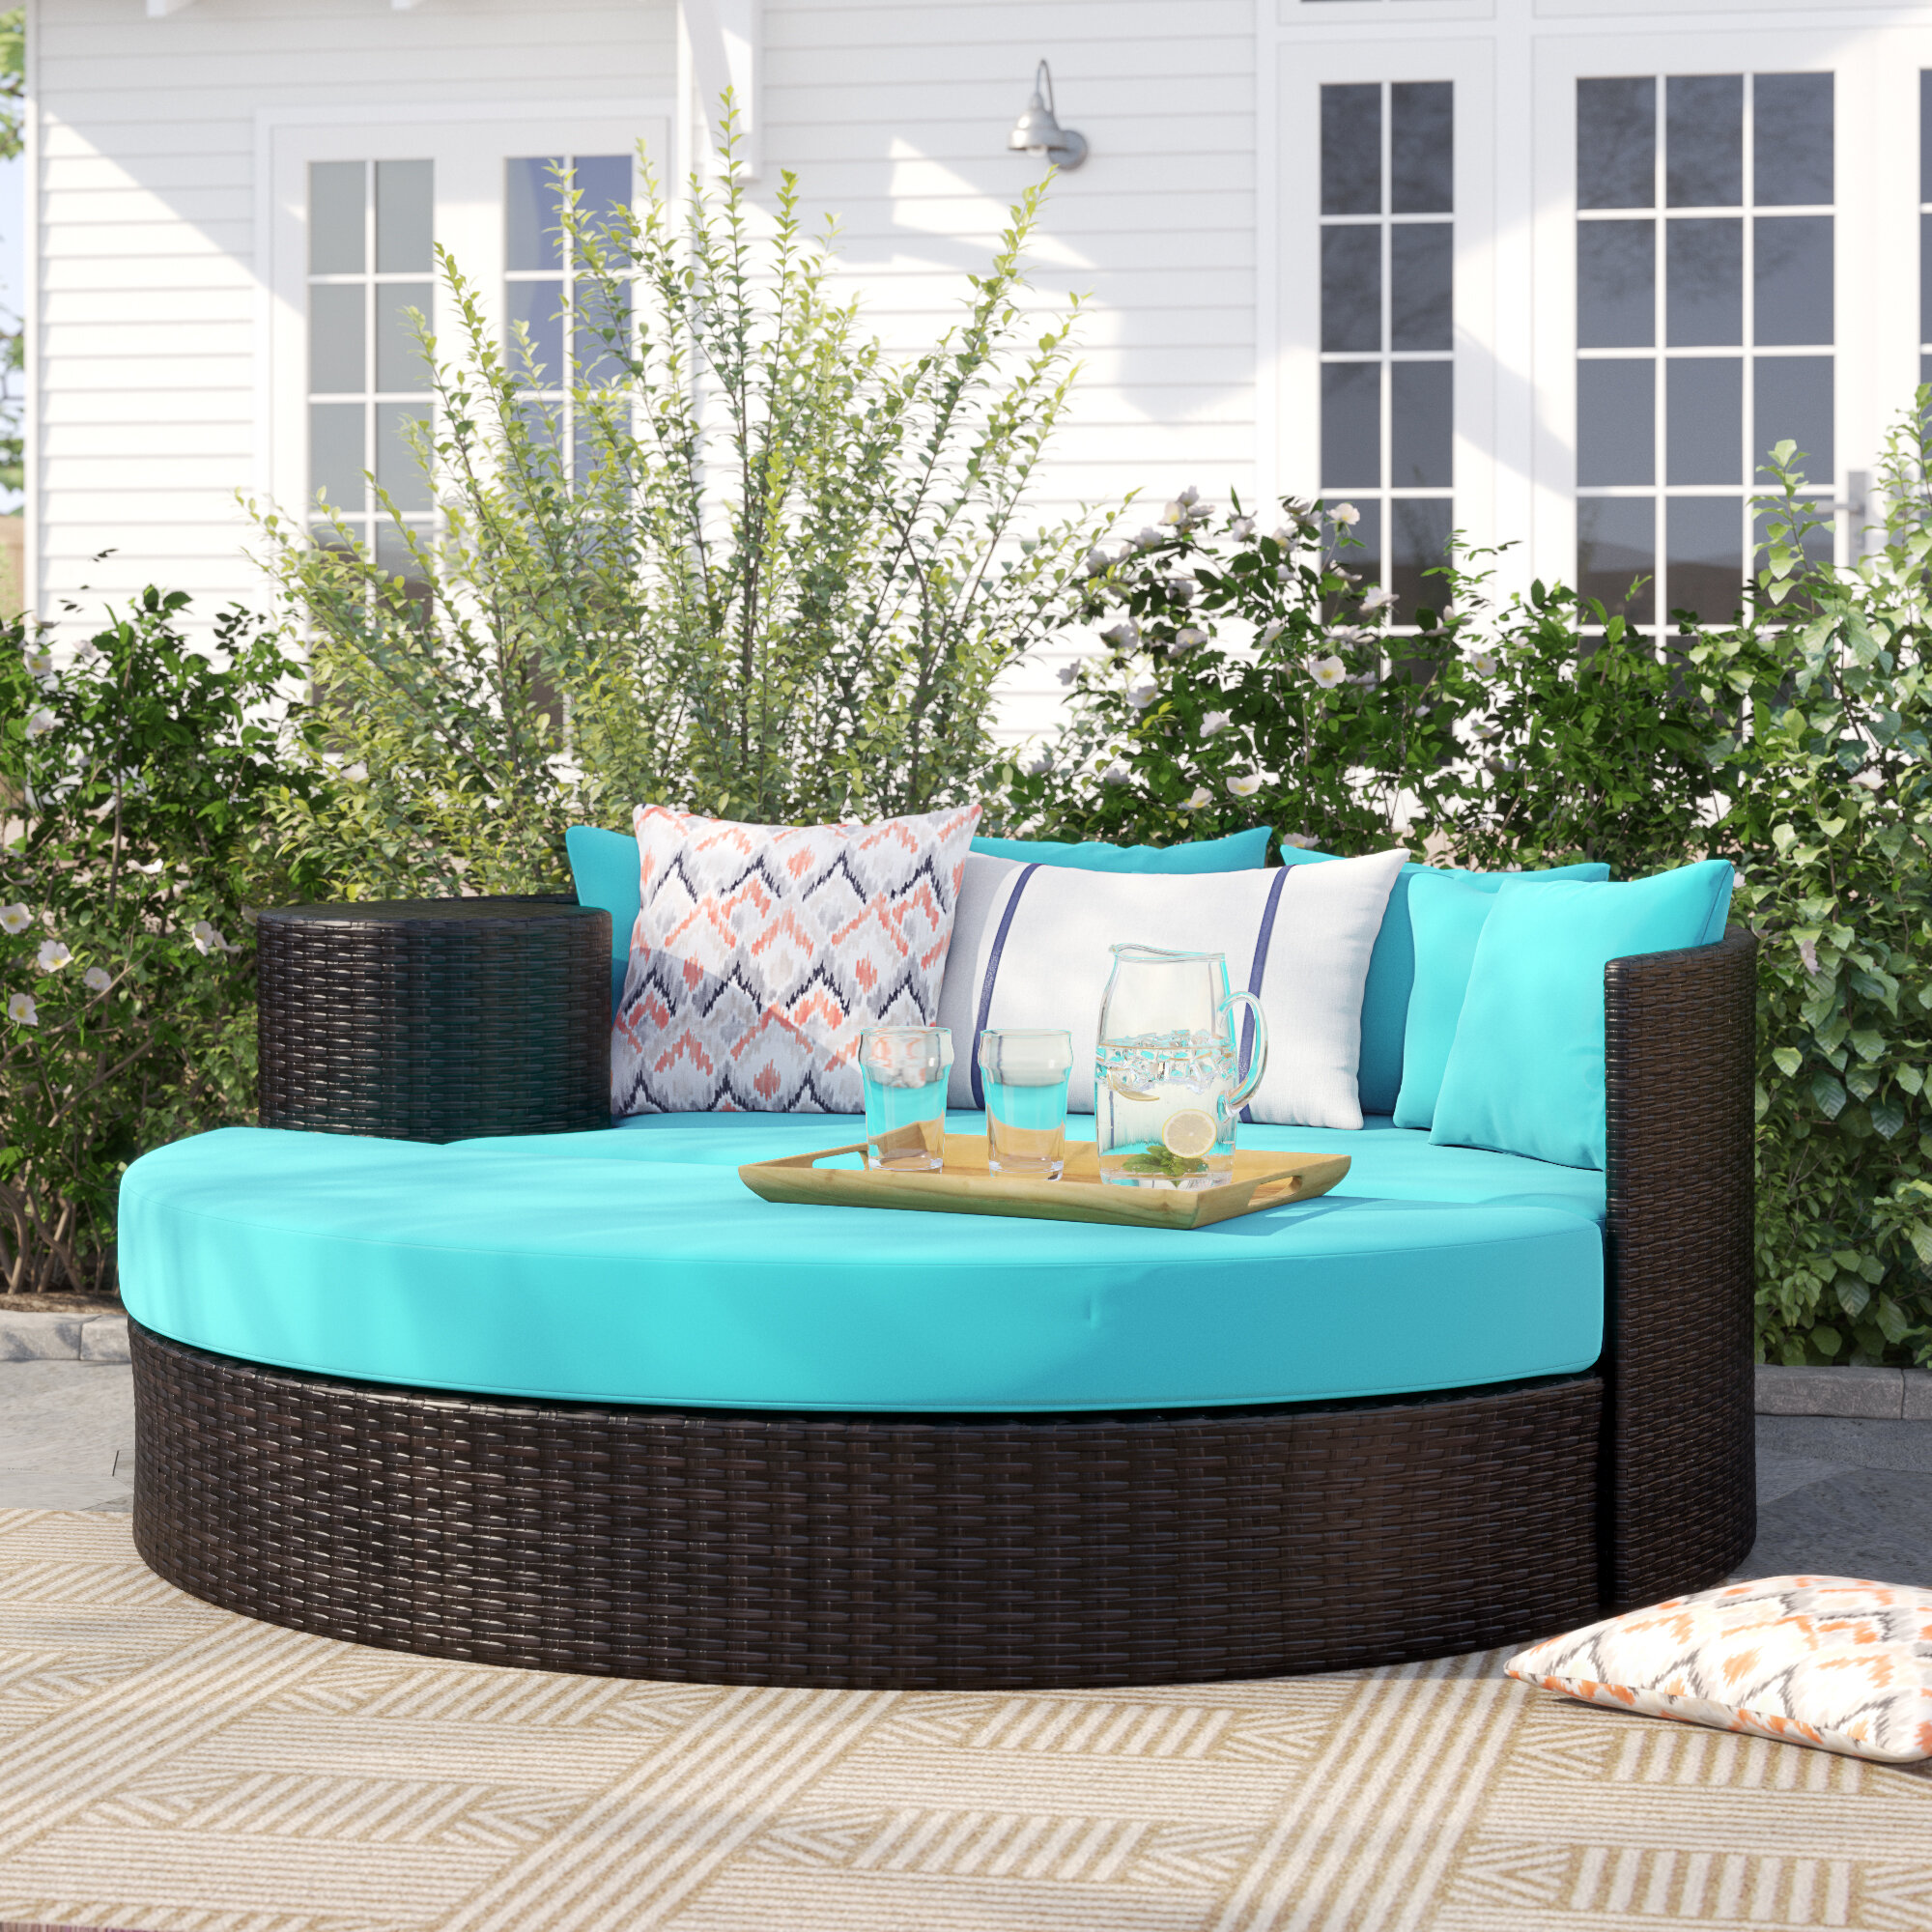 Freeport Patio Daybeds With Kudde